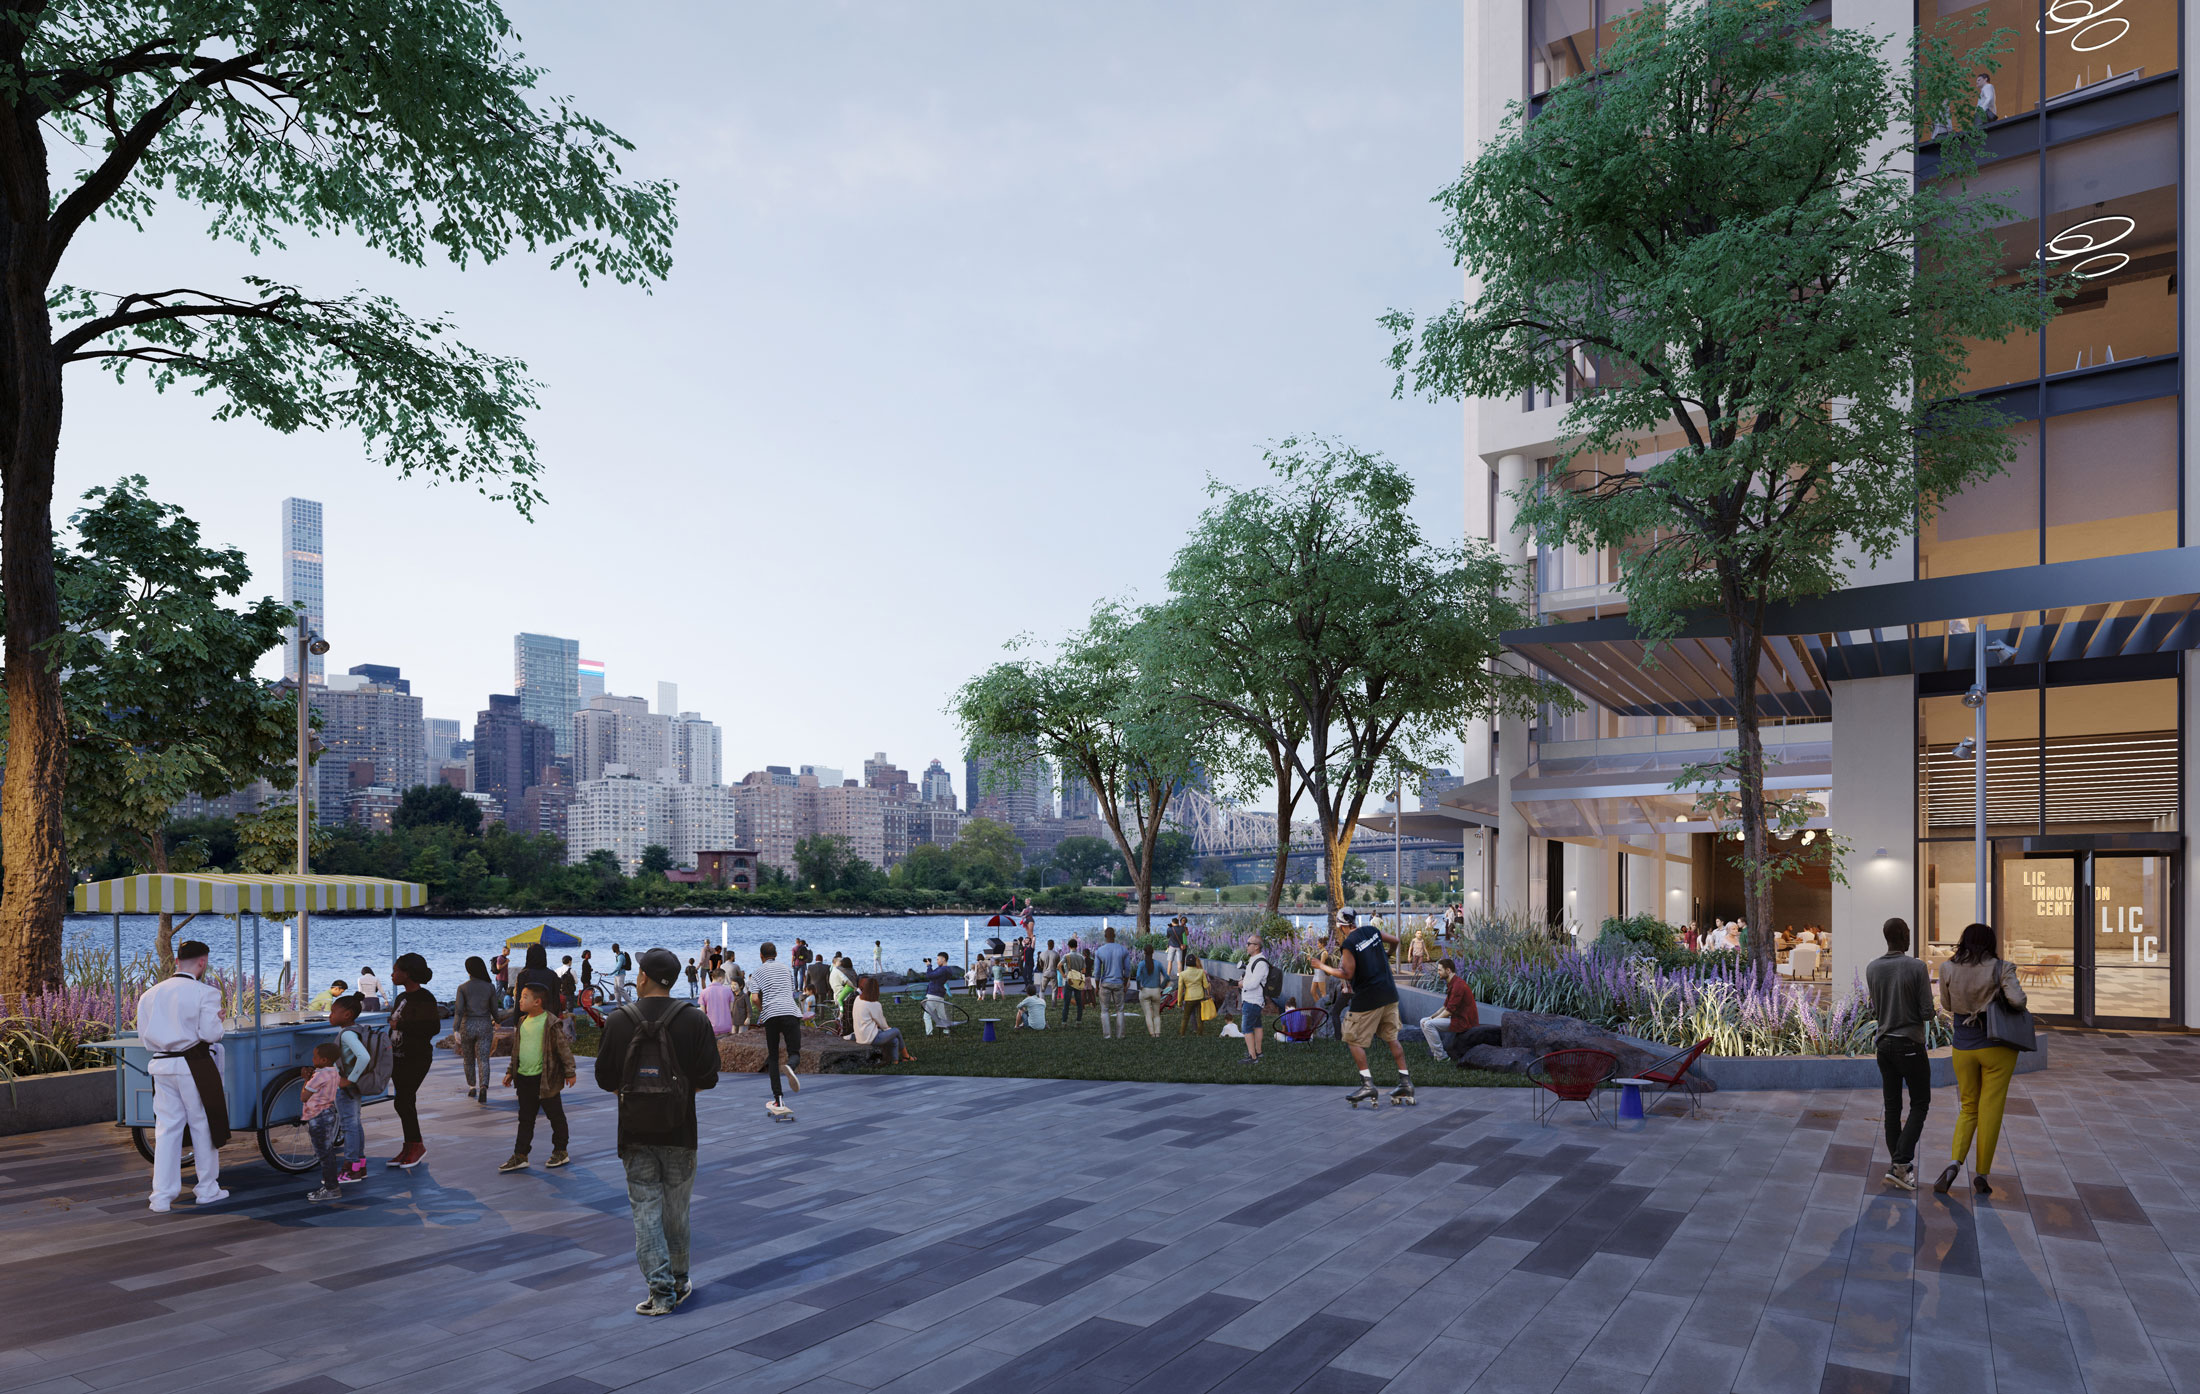 Architectural Rendering of the exterior of the Anable Basin project located in Long Island City in Queens, New York